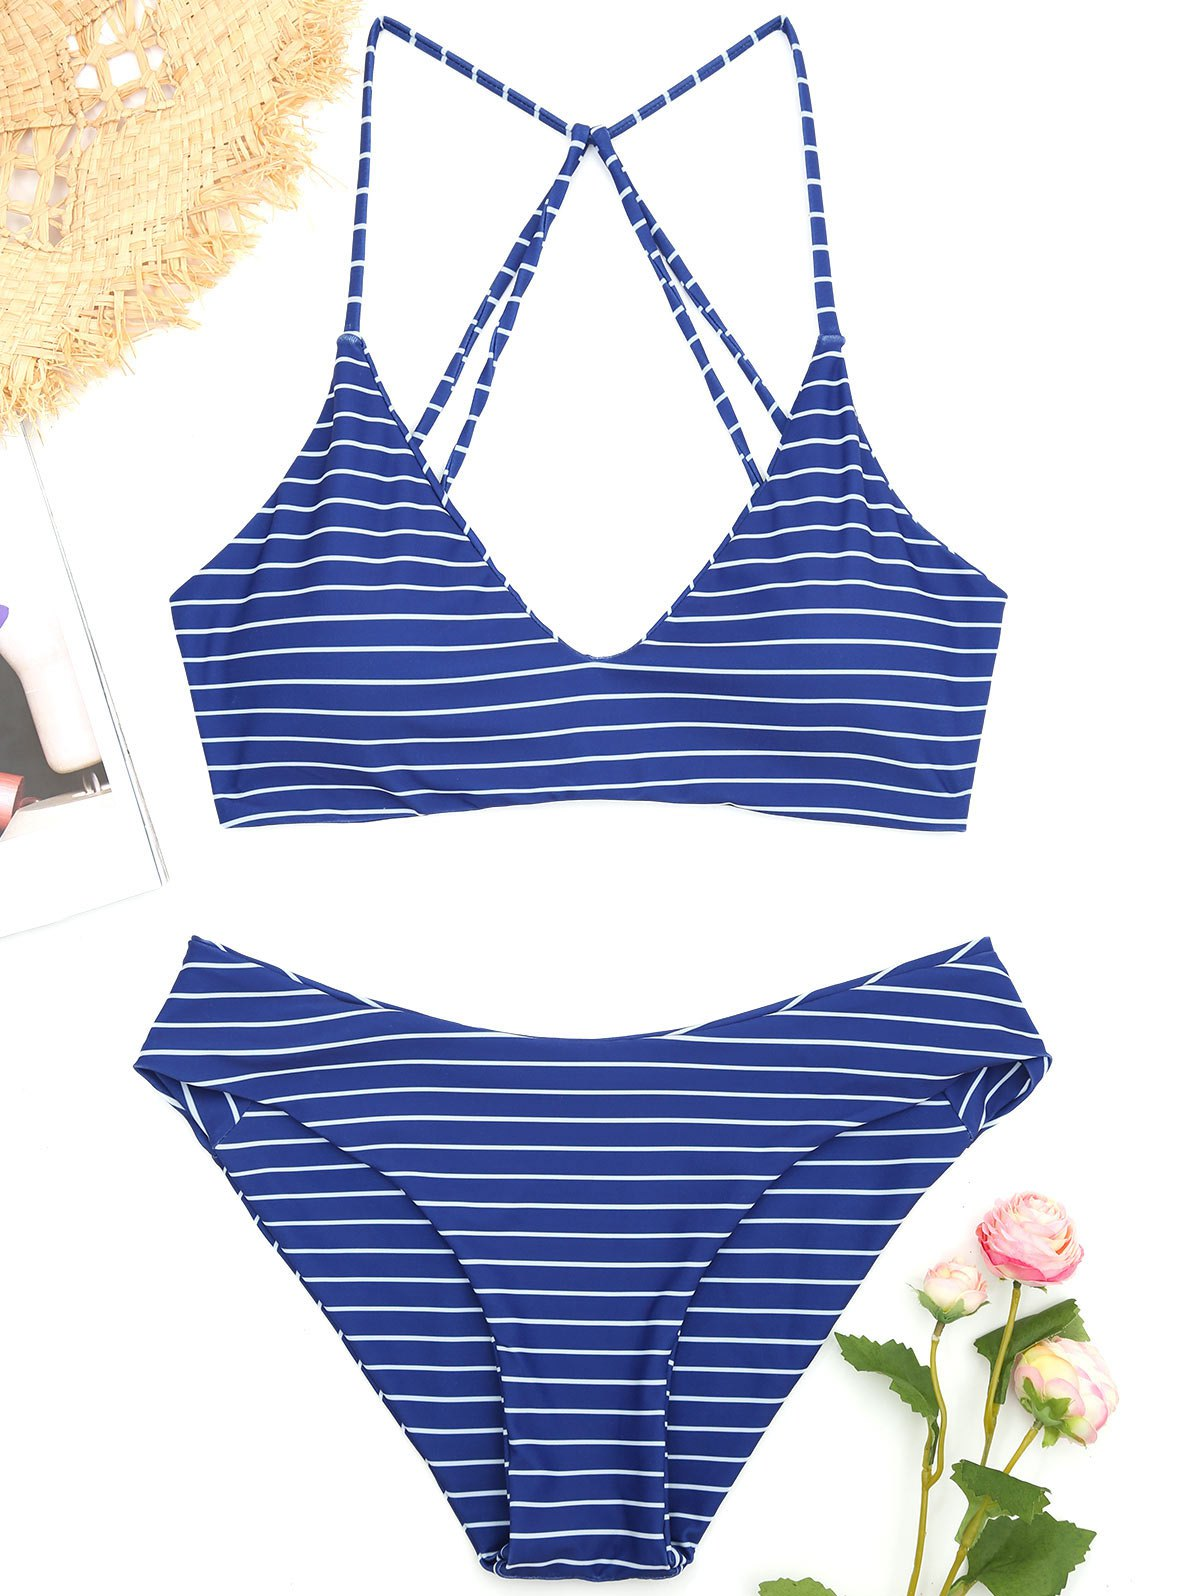 2018 Striped Caged Bathing Suit In Deep Blue M Deryan Toddler Luxe Cream Pueter Travel Sleeping Cot Bed Chic